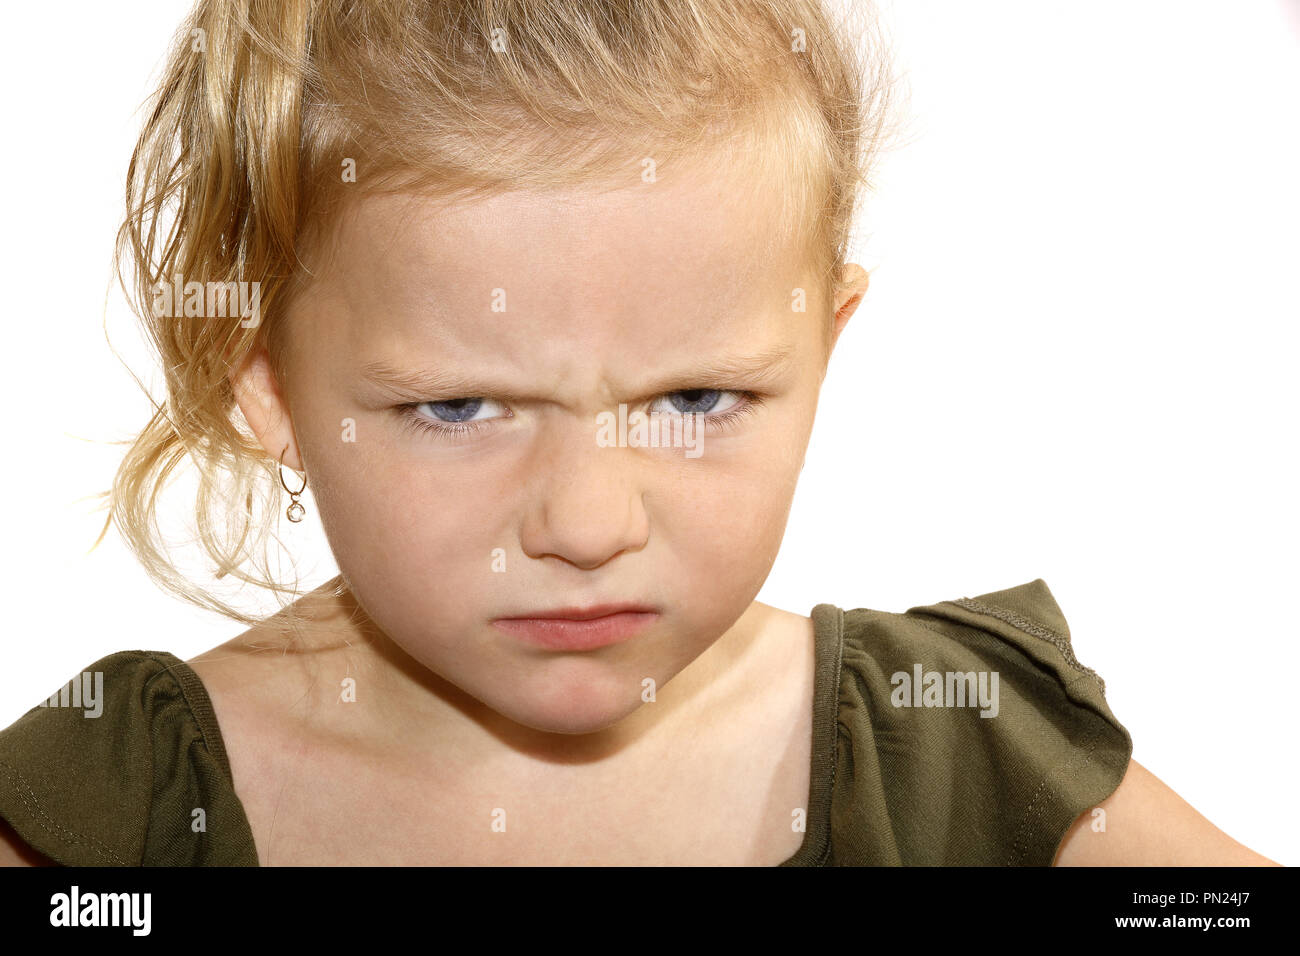 Six year old girl scowling at camera - Stock Image